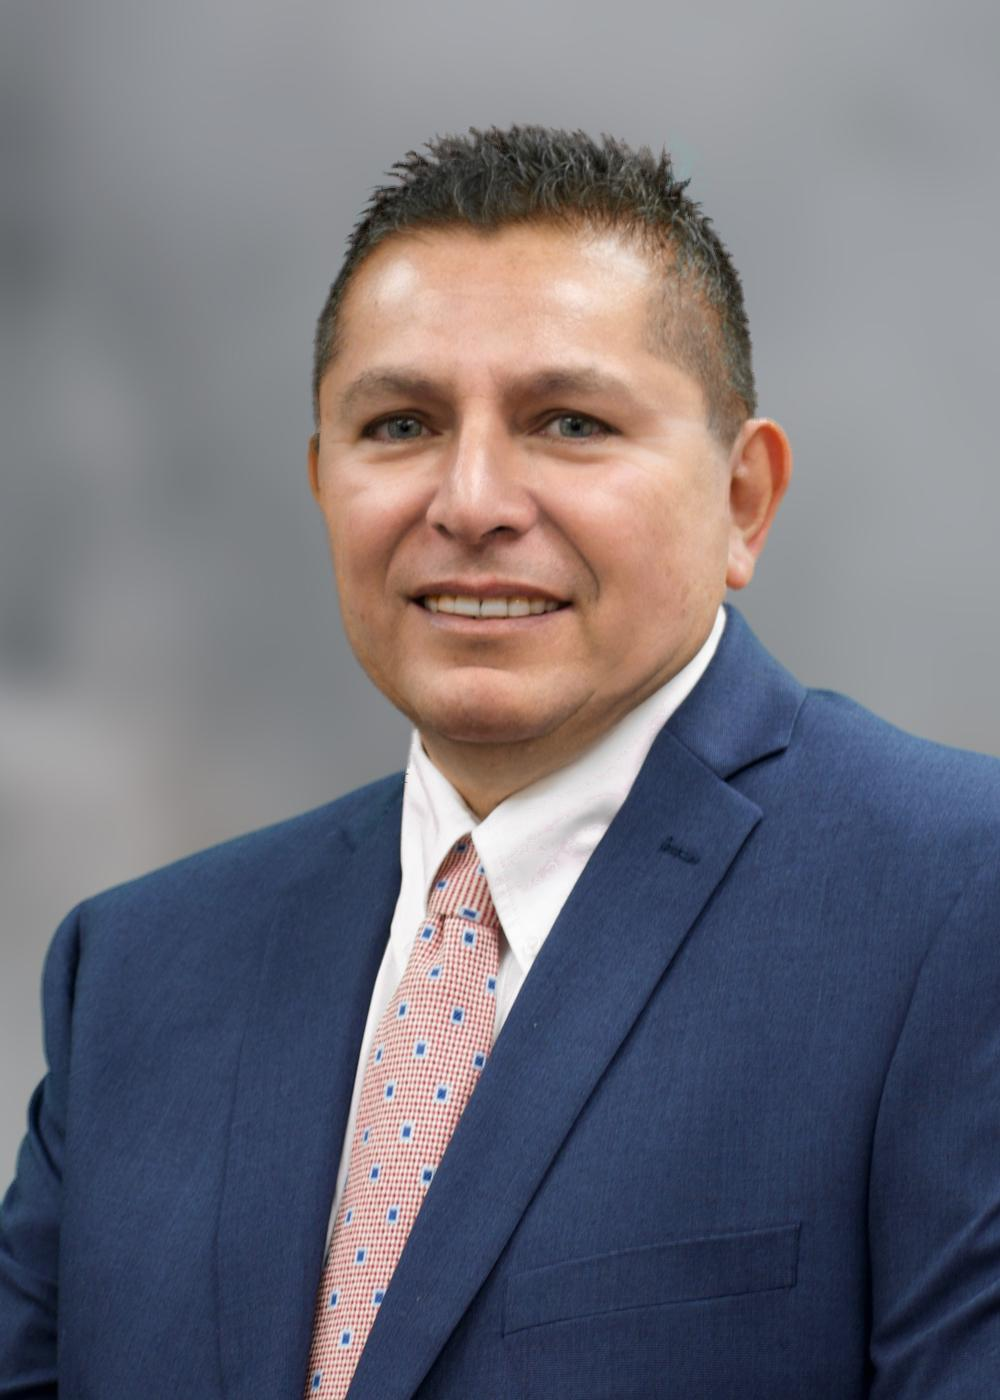 FRANK LUNA GUTIERREZ Financial Professional & Insurance Agent